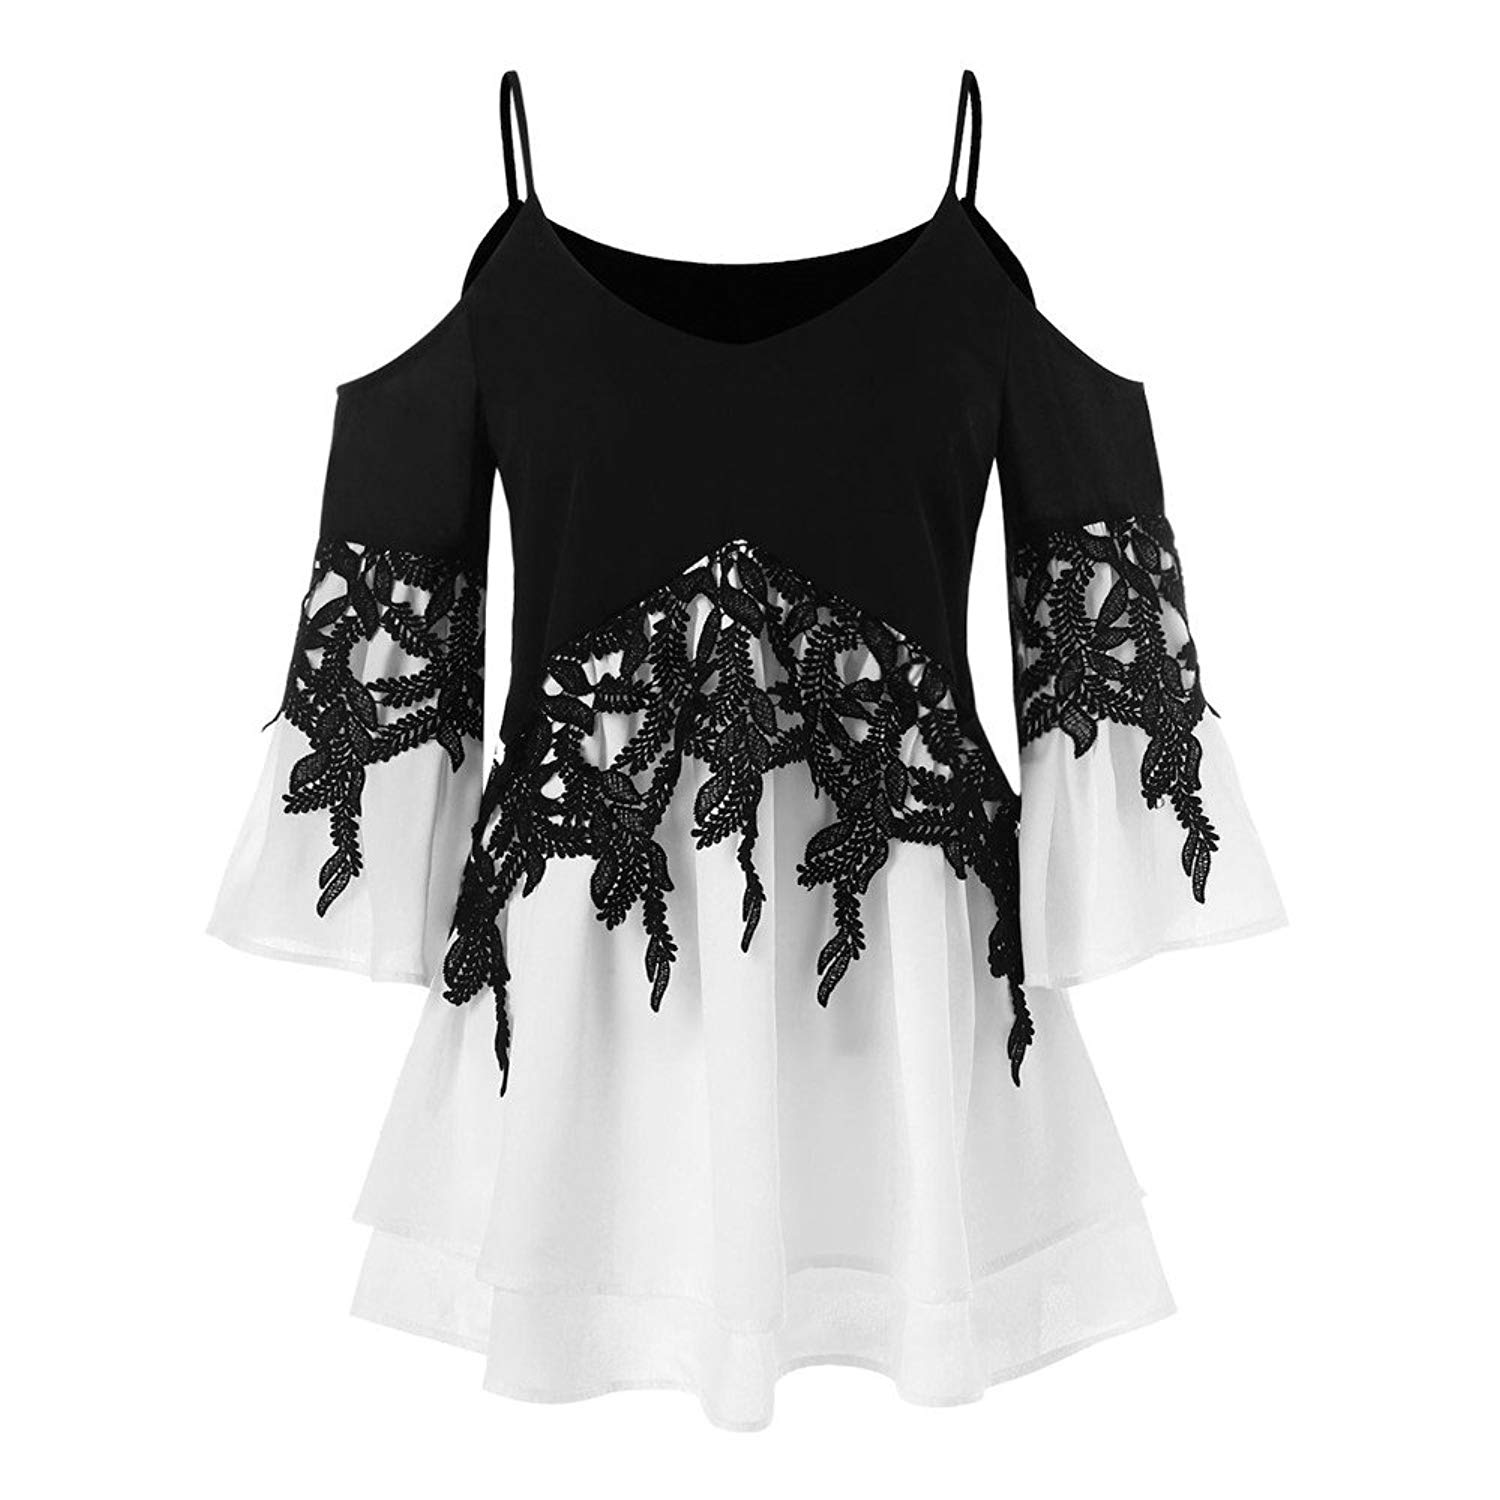 Shirts for Women Plus Size,Fashion Applique Flowy Chiffon T Shirts V-Neck Long Sleeve Blouse Tops Sweatshirt